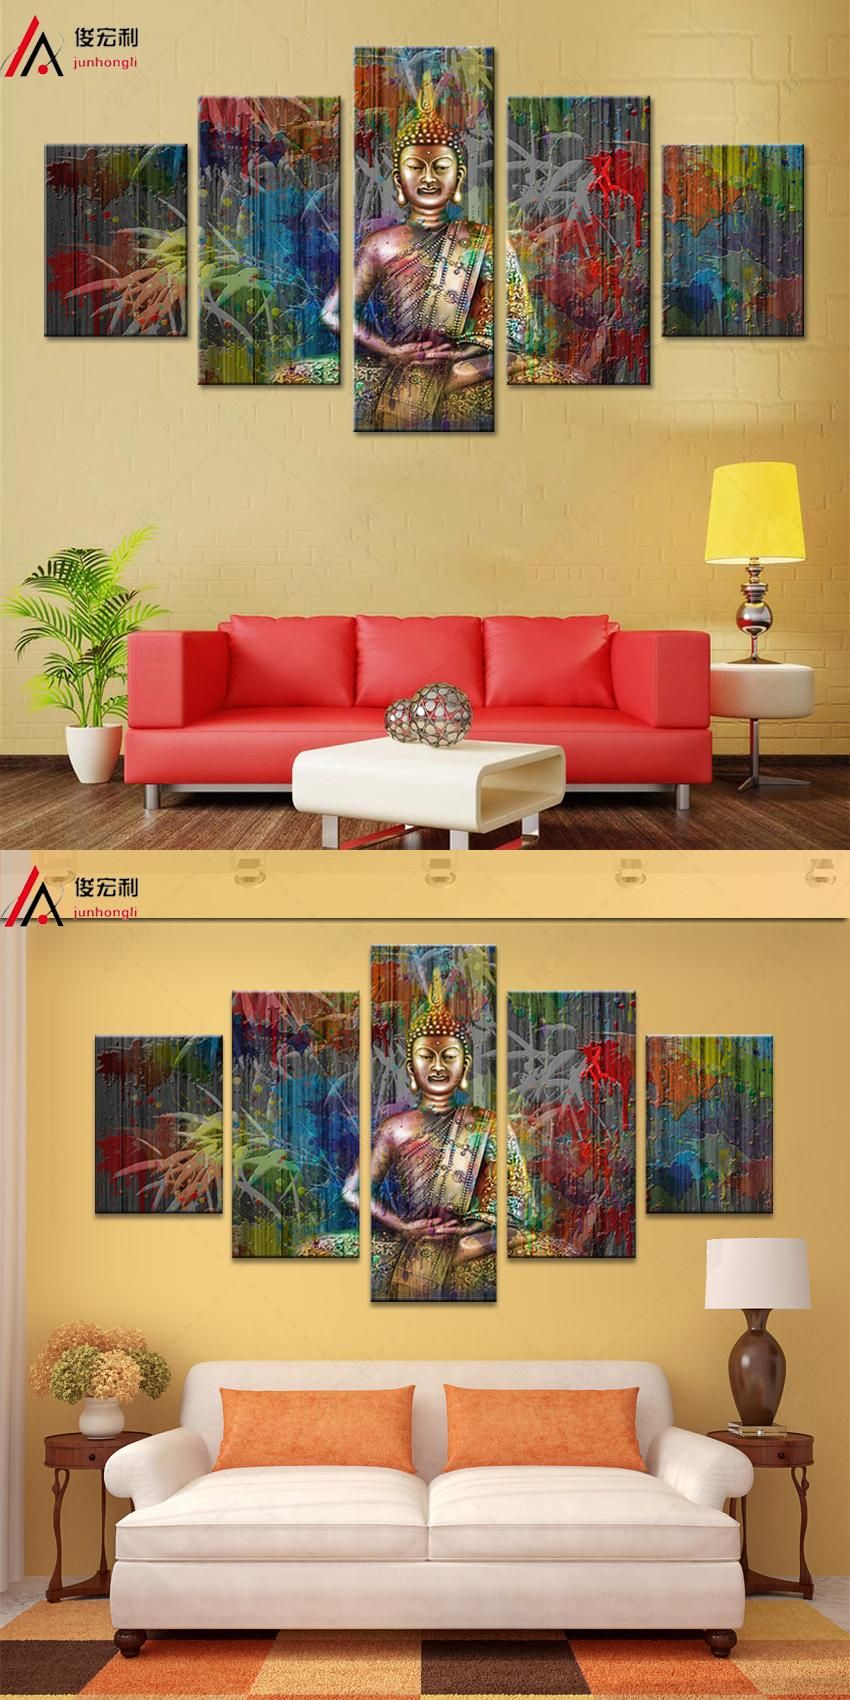 Visit to Buy] 5 piece canvas art wall art canvas prints modular ...